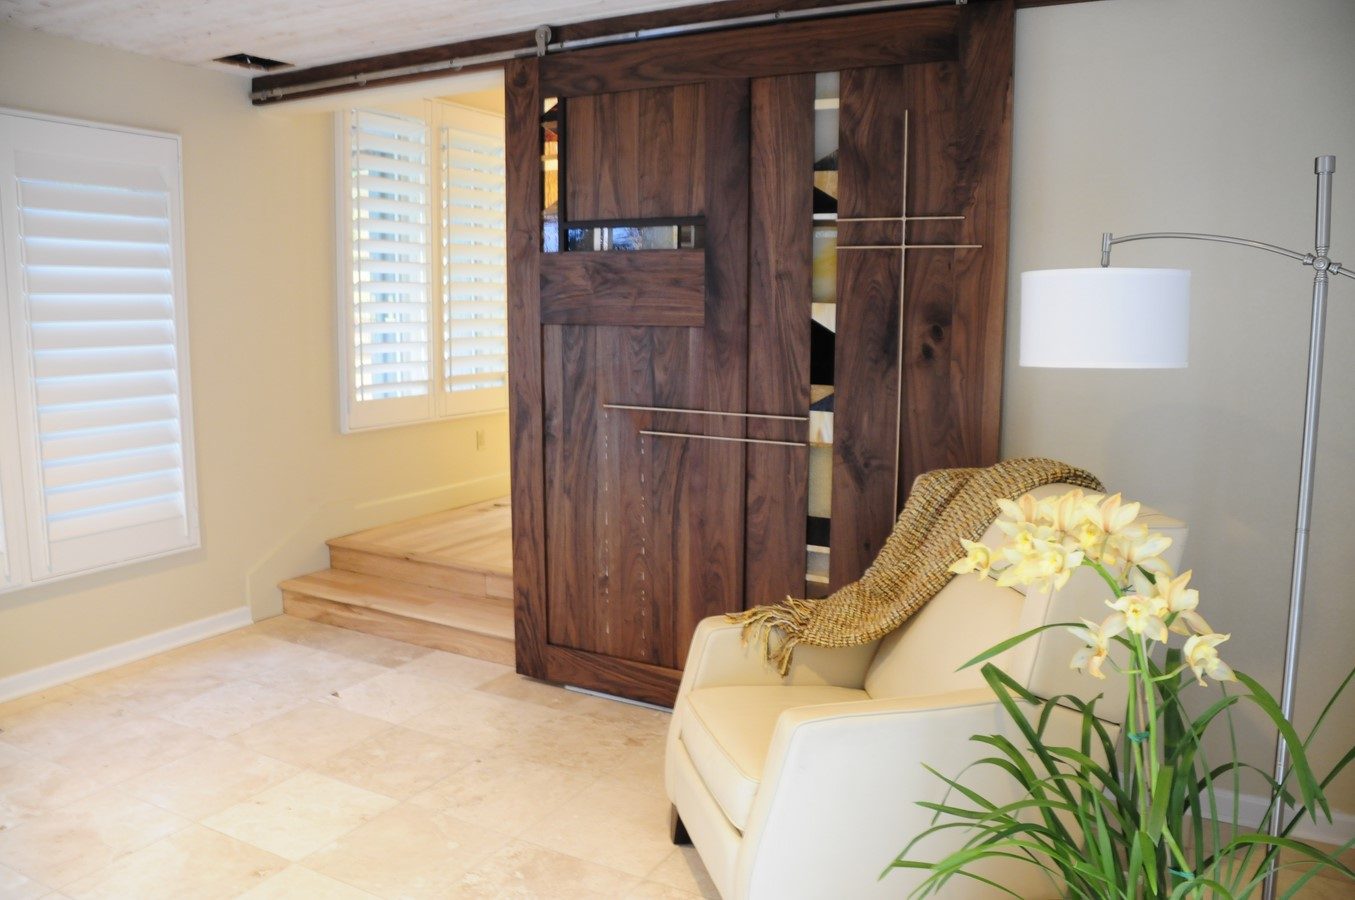 Sliding barn door opened